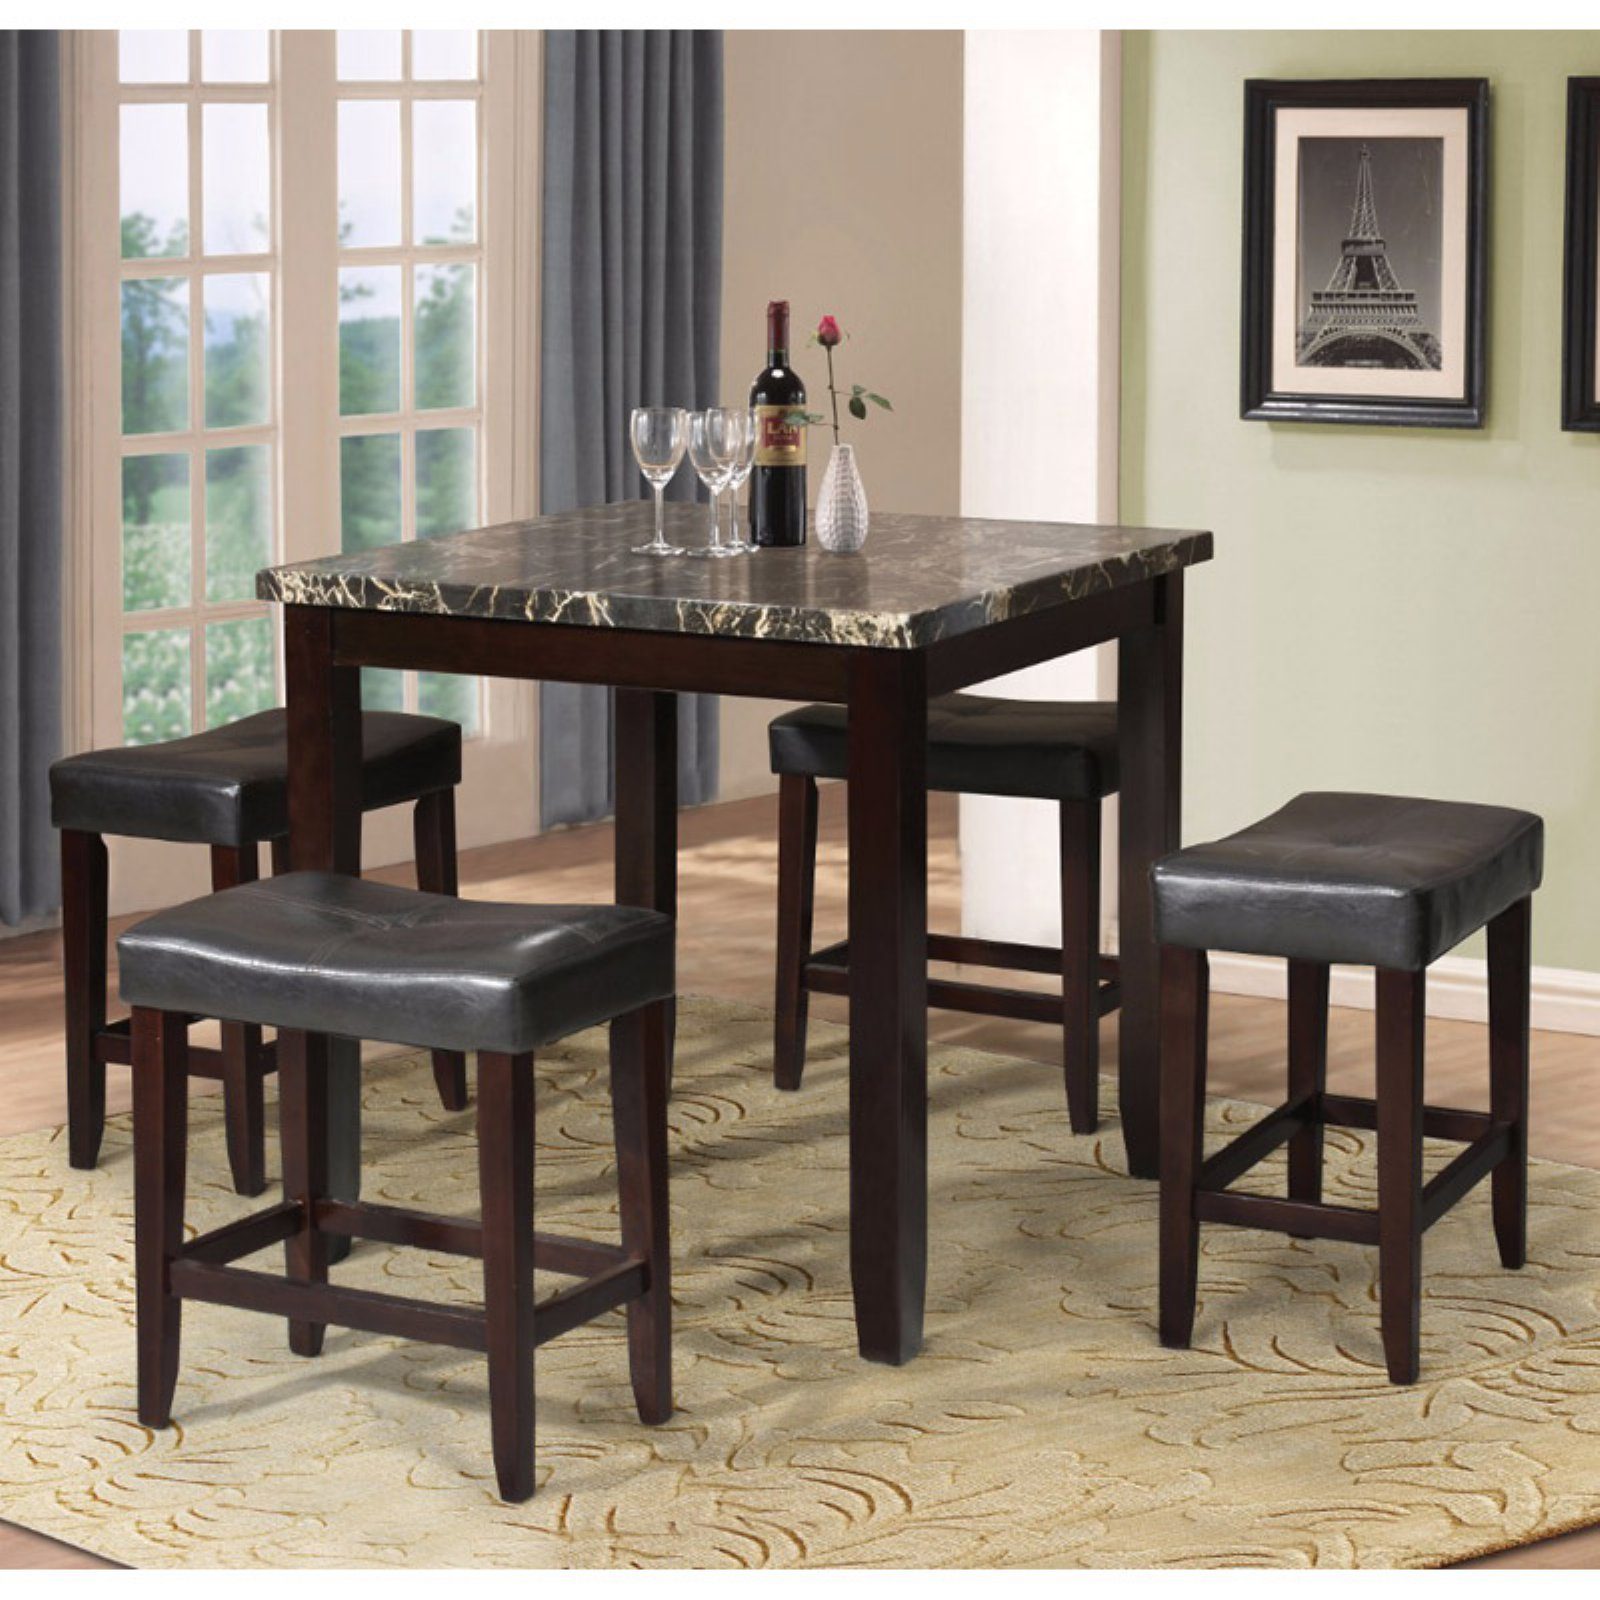 Berrios 3 Piece Counter Height Dining Sets Regarding Well Known Benzara Modish 5 Piece Faux Marble Counter Height Dining Table Set (#3 of 20)